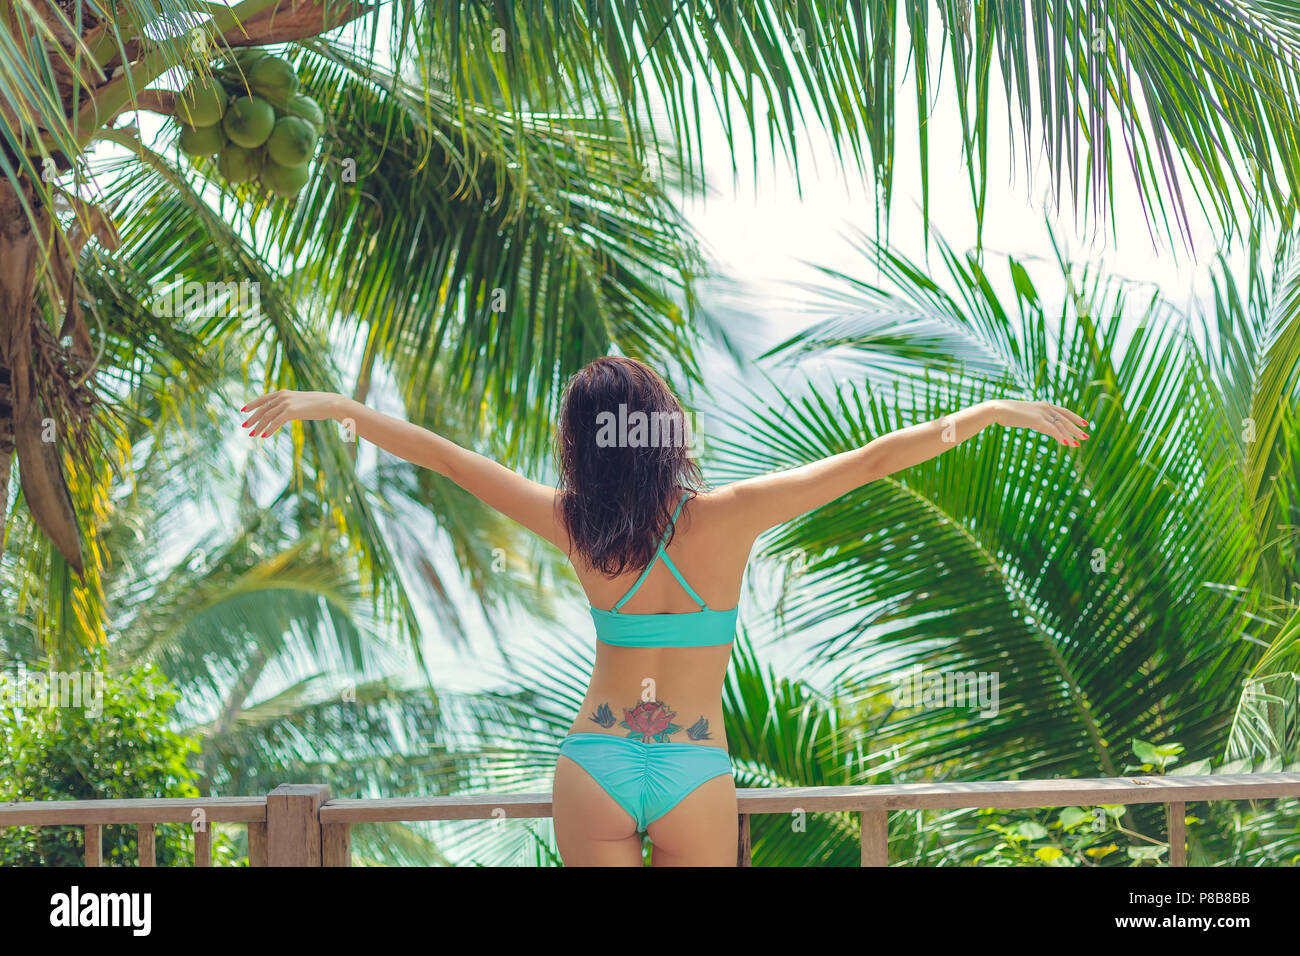 rear view of beautiful girl in bikini standing with open arms at swimming pool - Stock Image